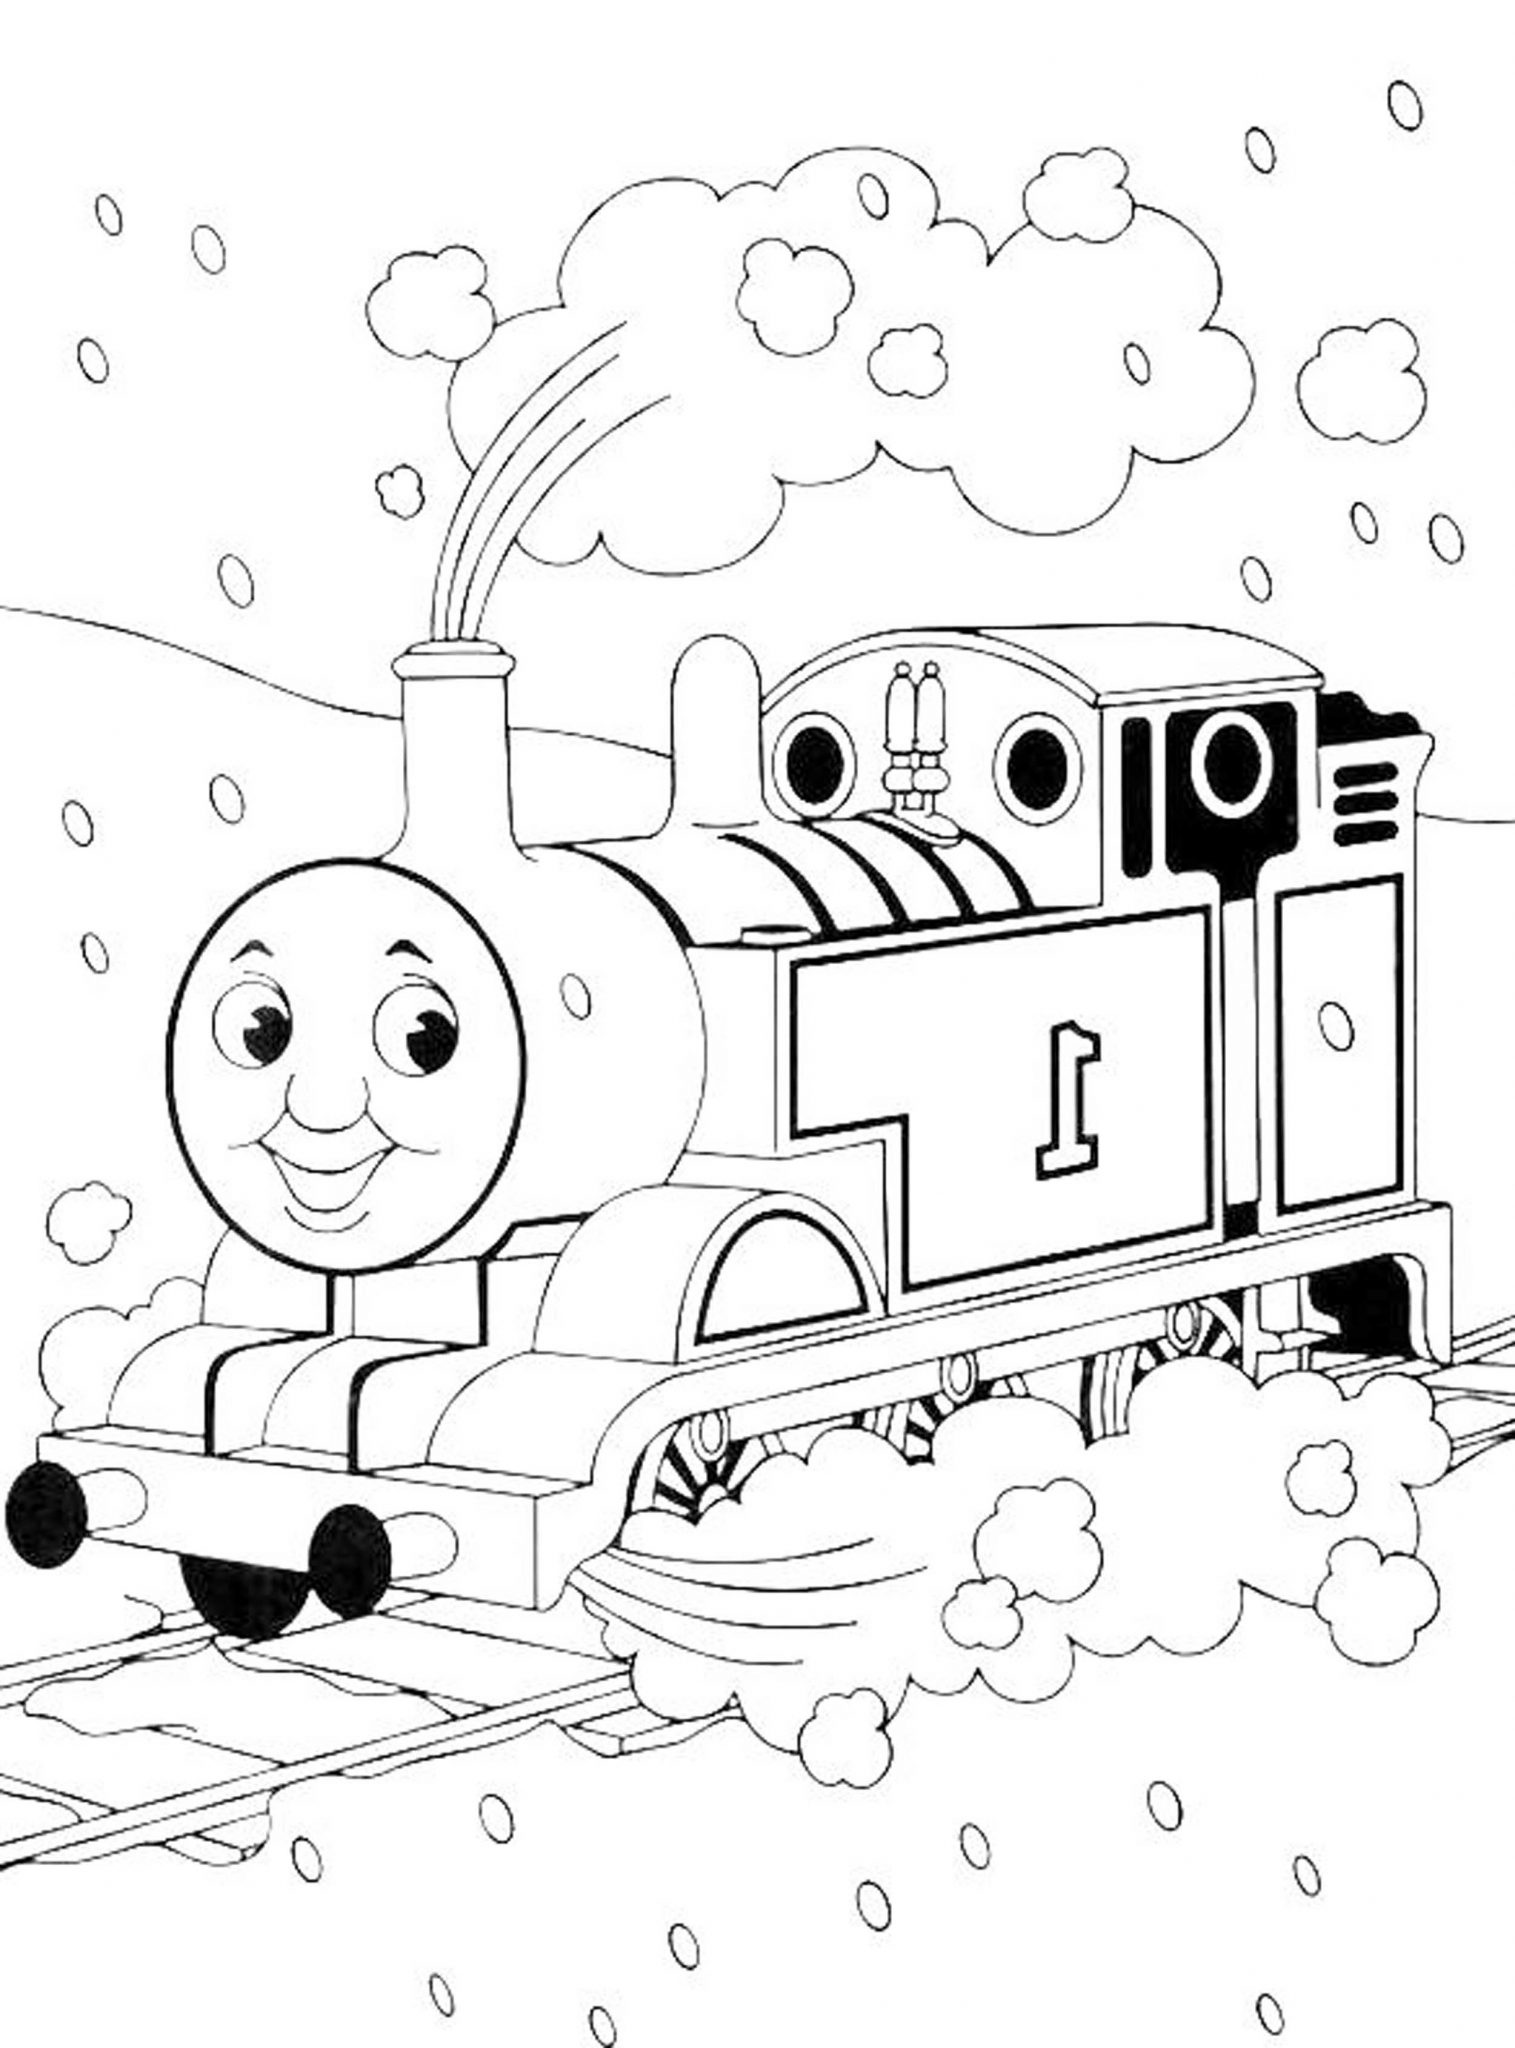 Train coloring template - Check